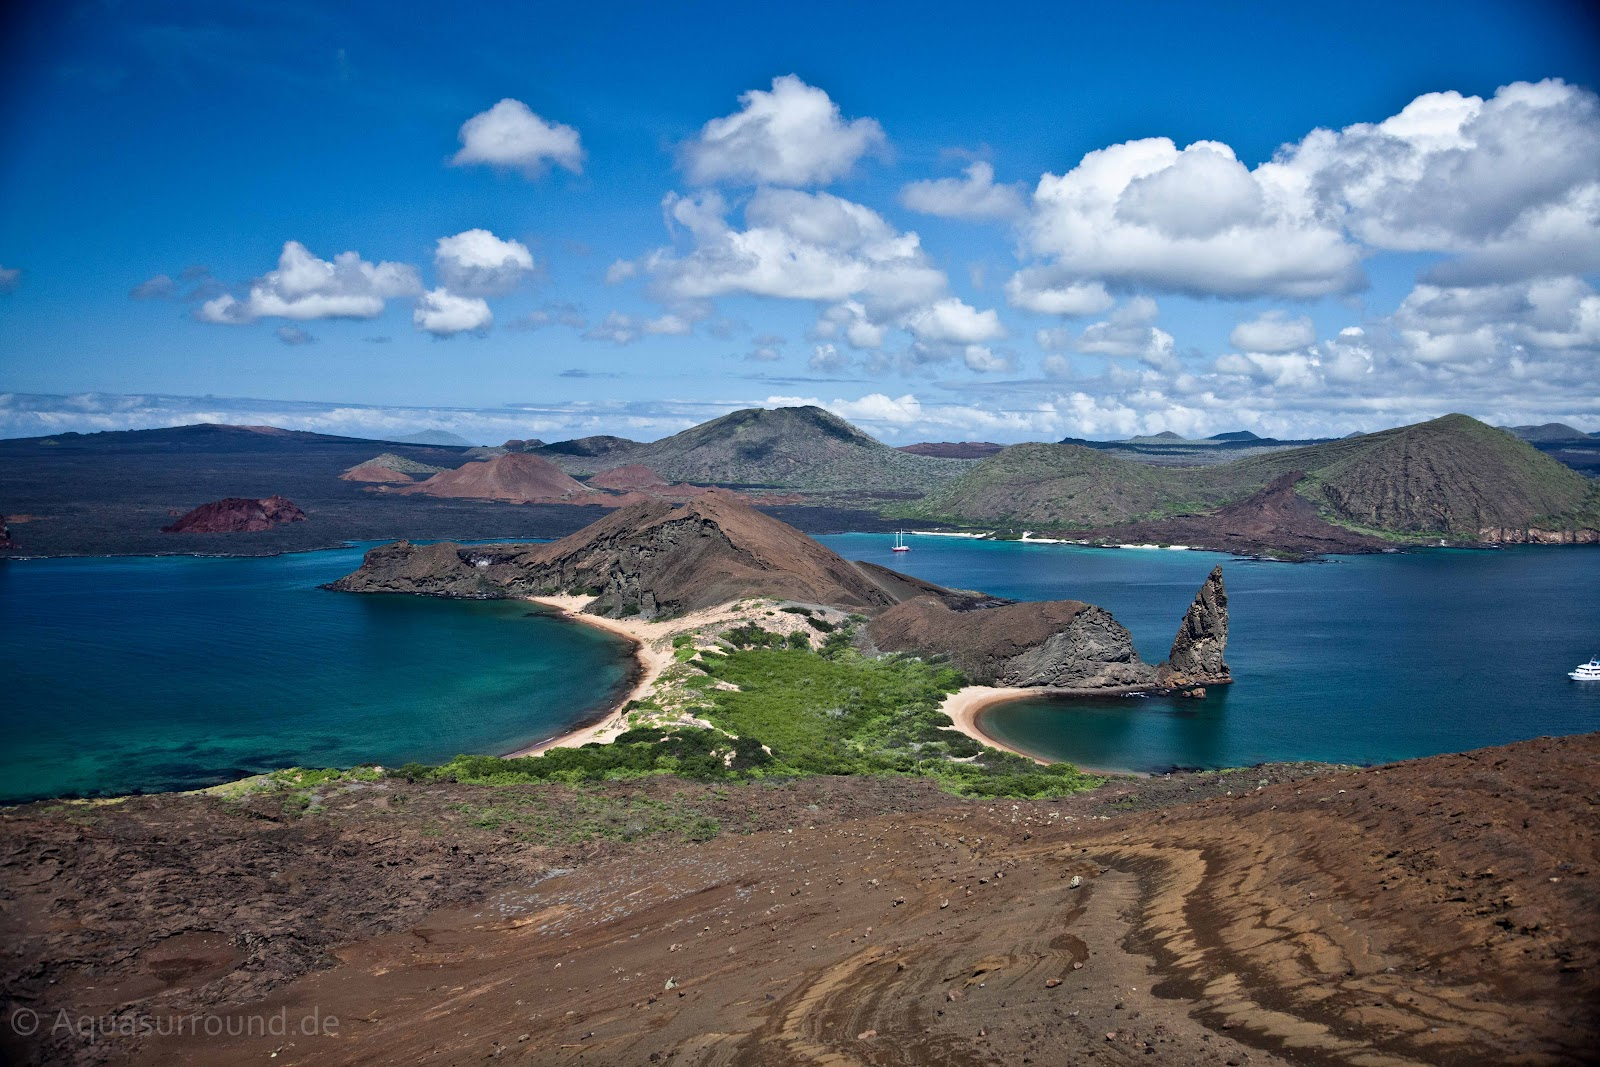 Best Way To See Galapagos Islands